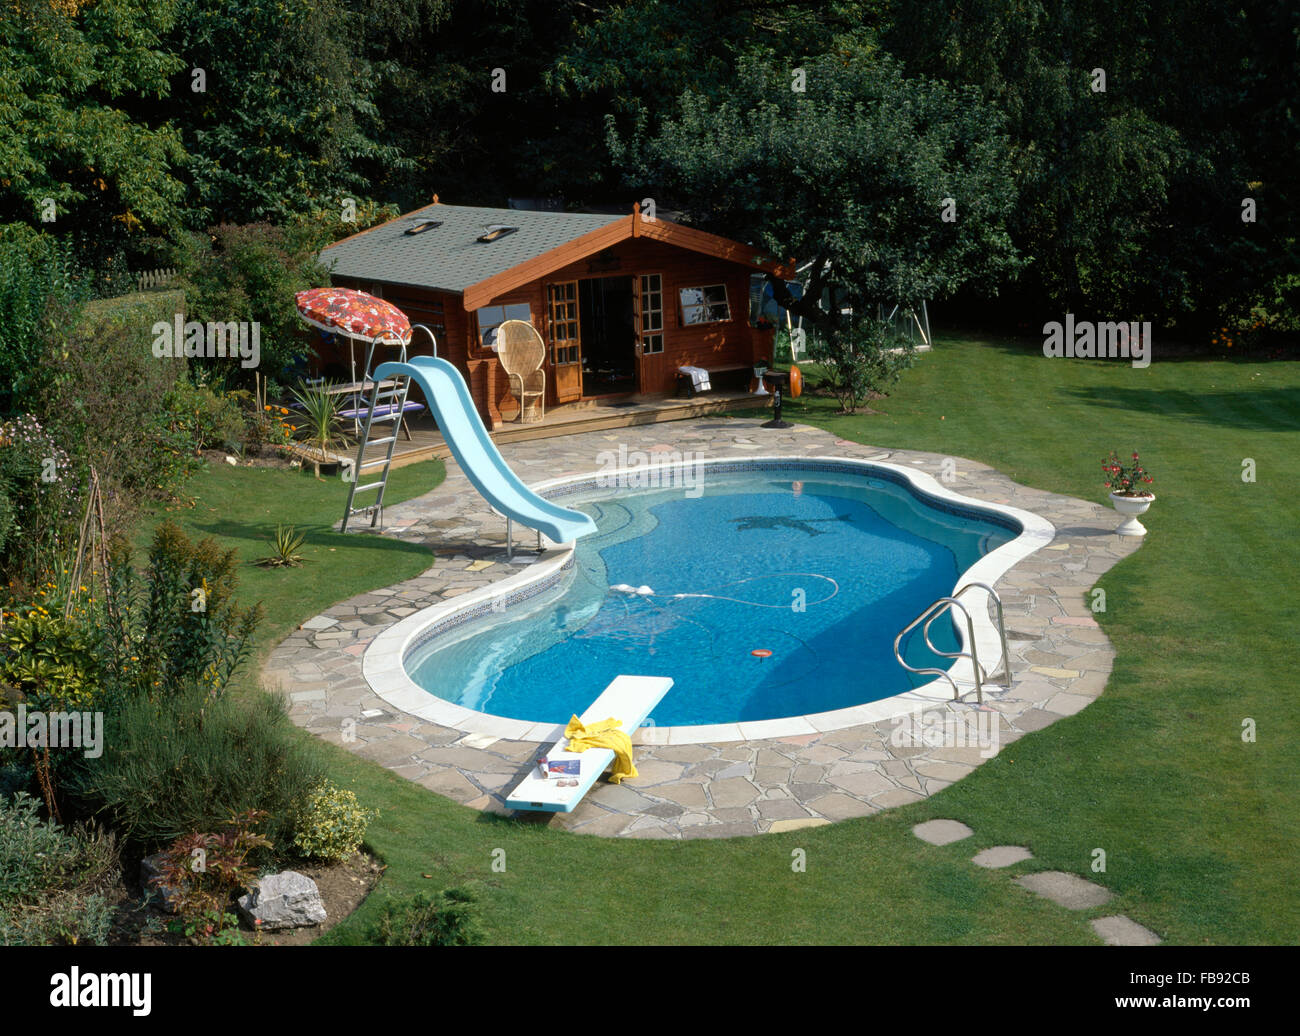 Birds Eye View Of A Kidney Shaped Swimming Pool With A Slide In Country  Garden With A Large Summerhouse